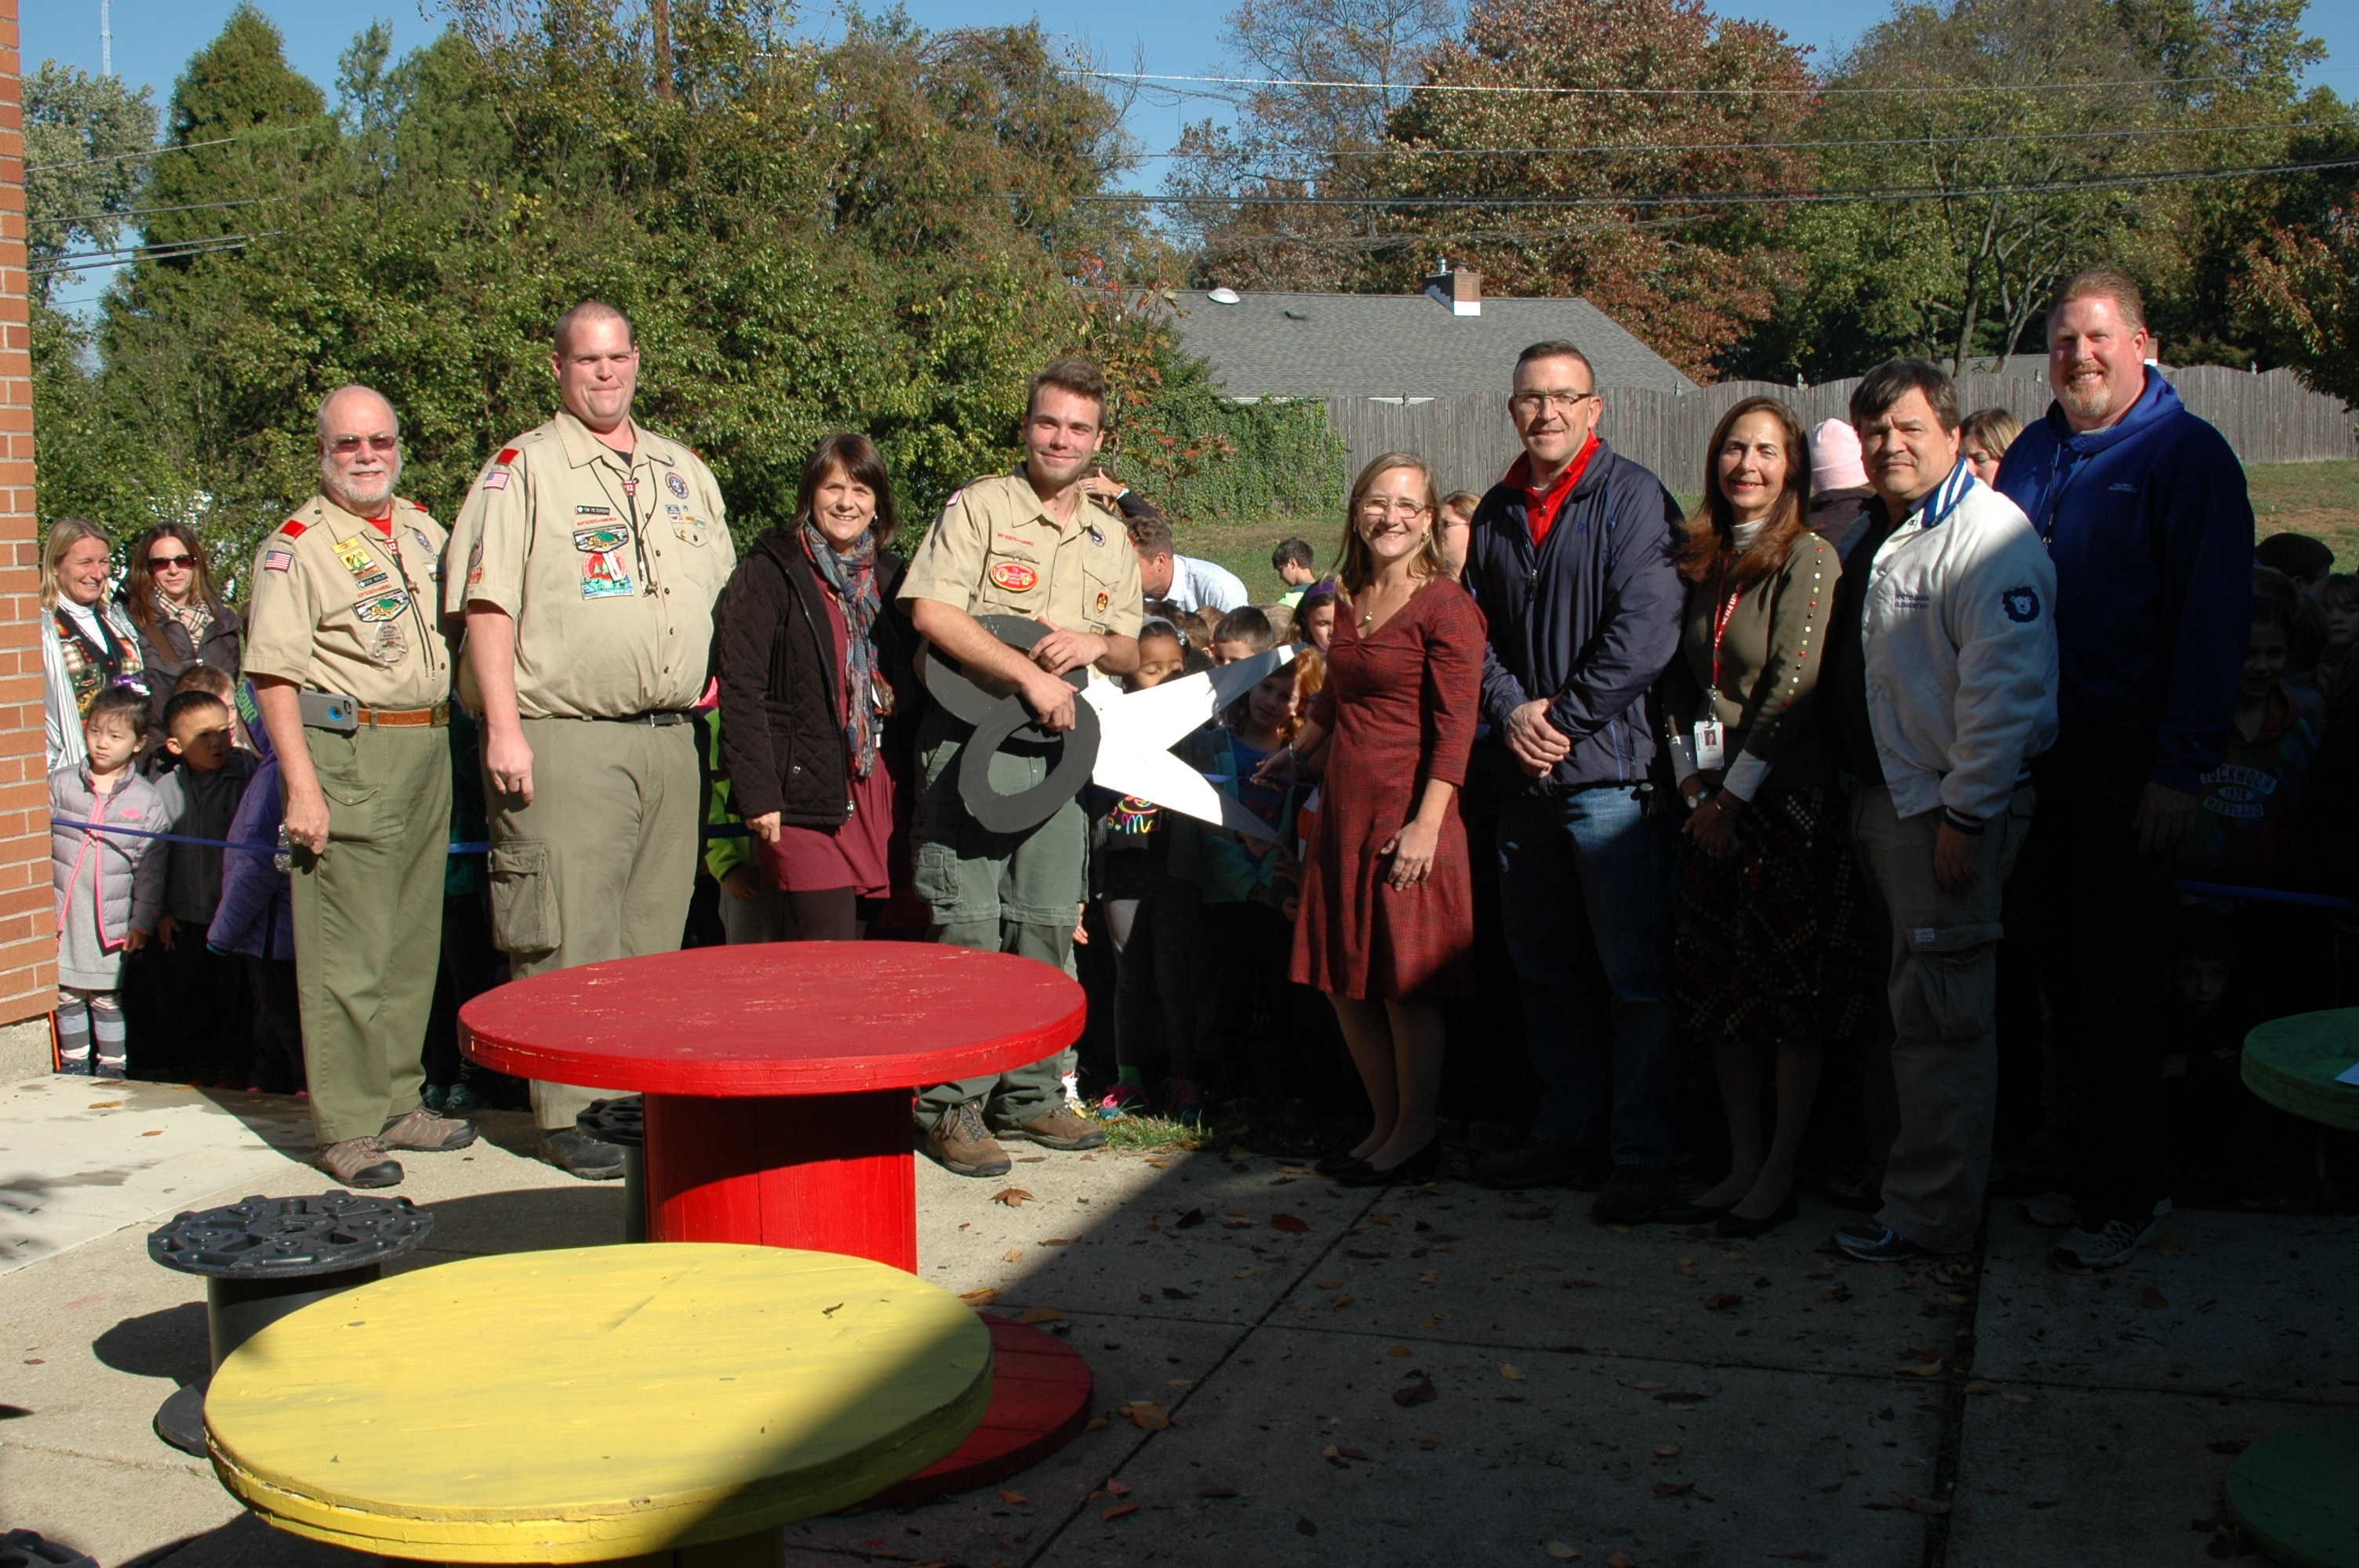 Nine people standing at ribbon. One dressed in scout uniform with big cardboard scissors.